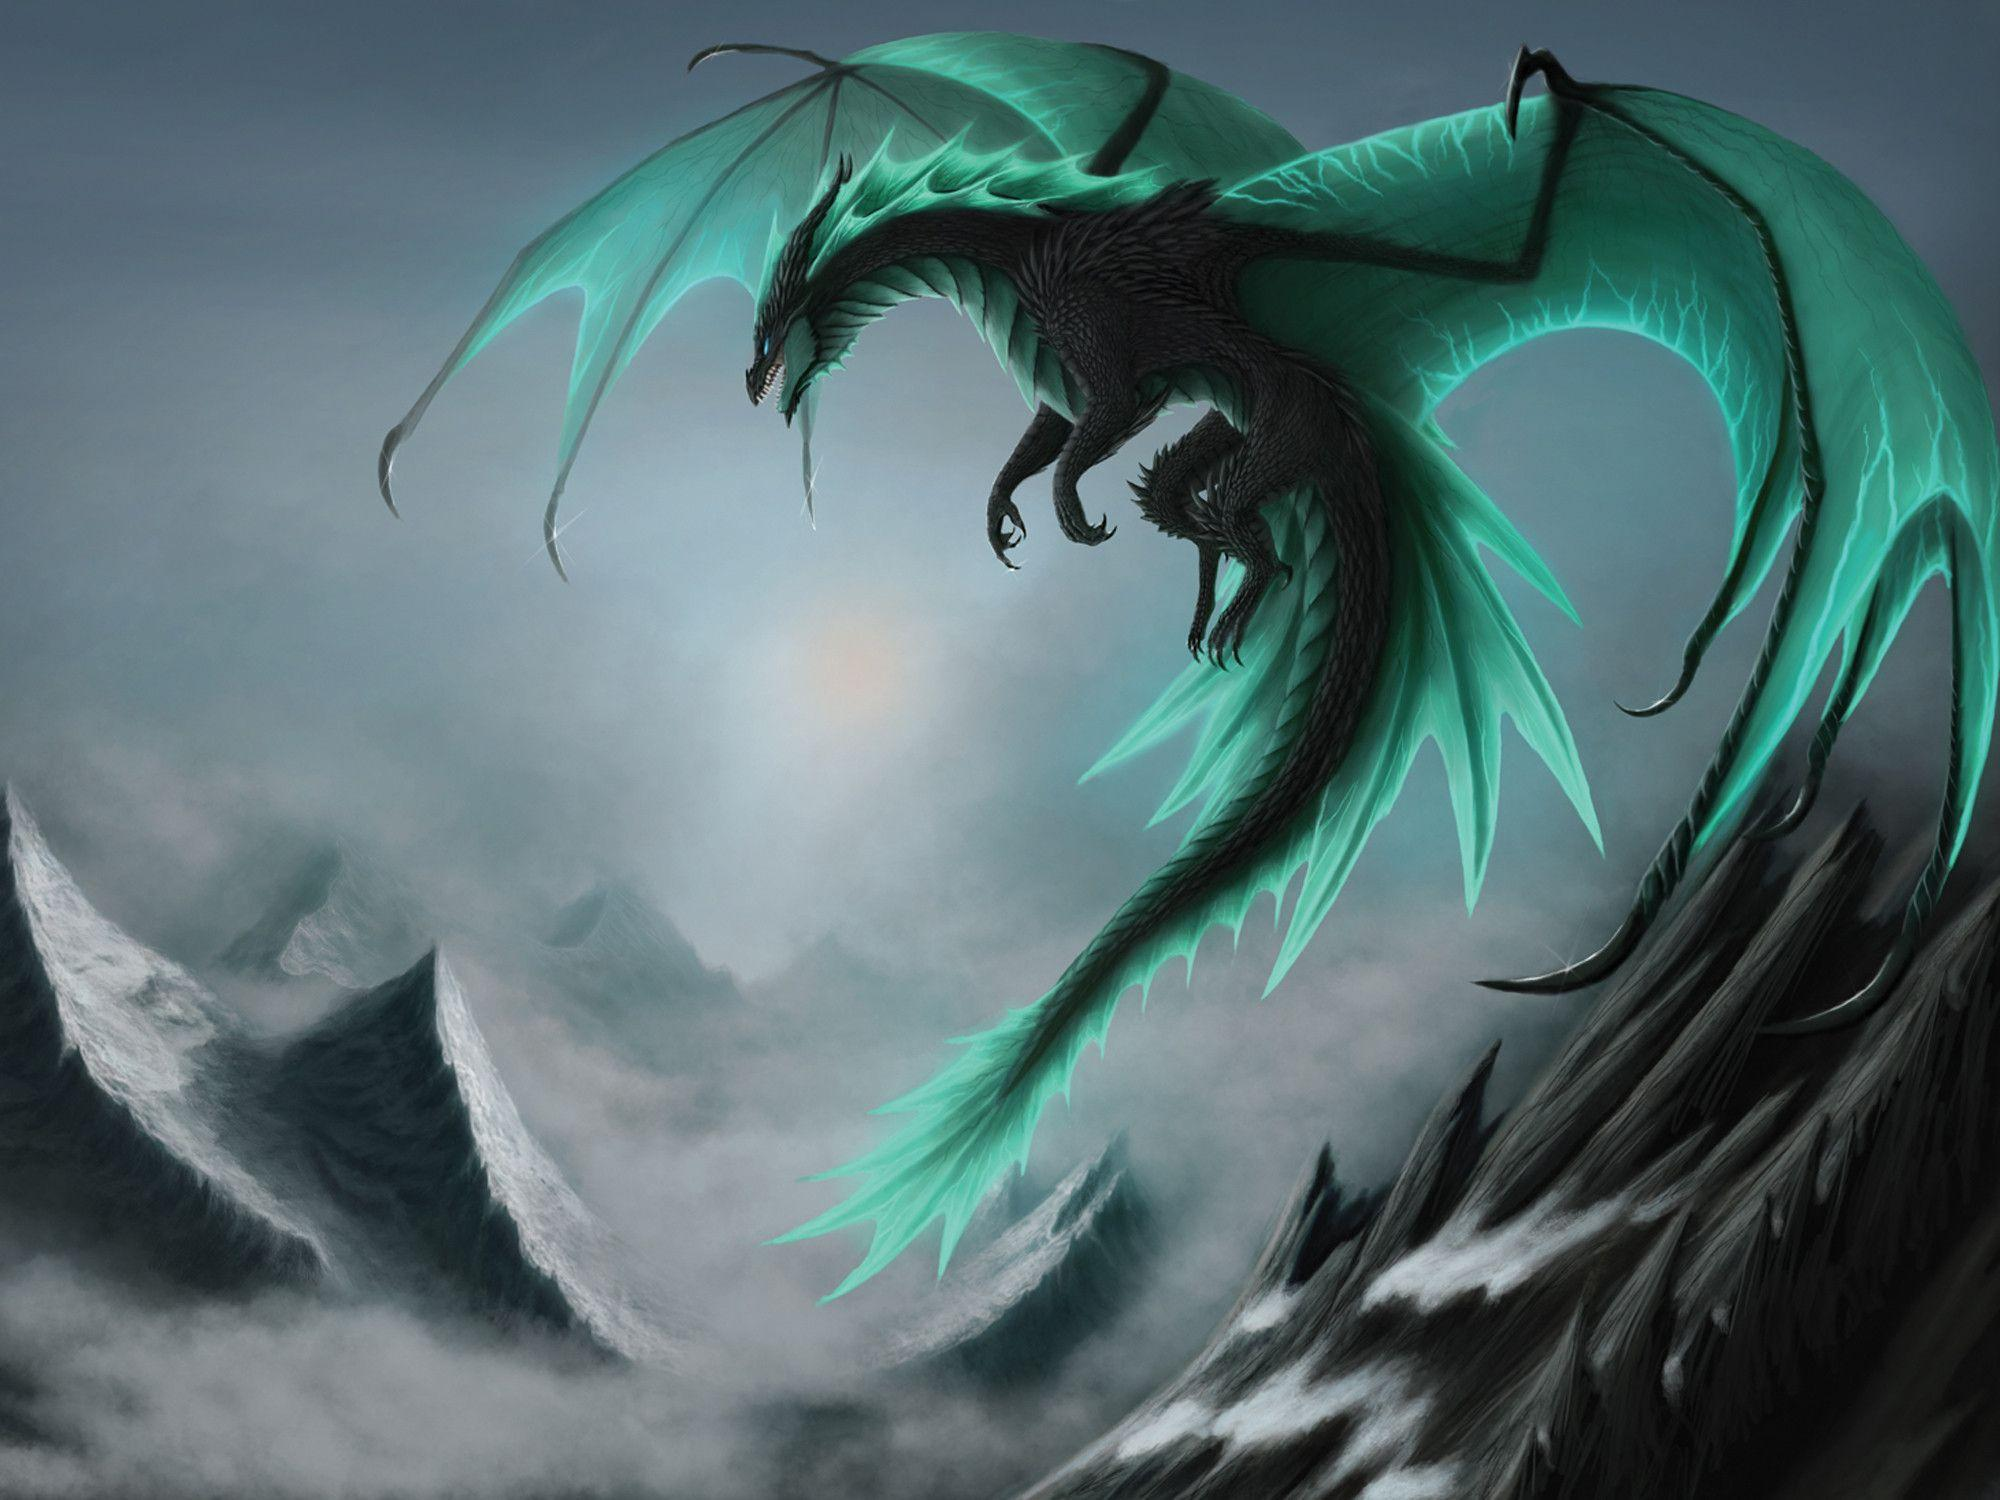 dragon wallpaper widescreen high resolution - photo #27